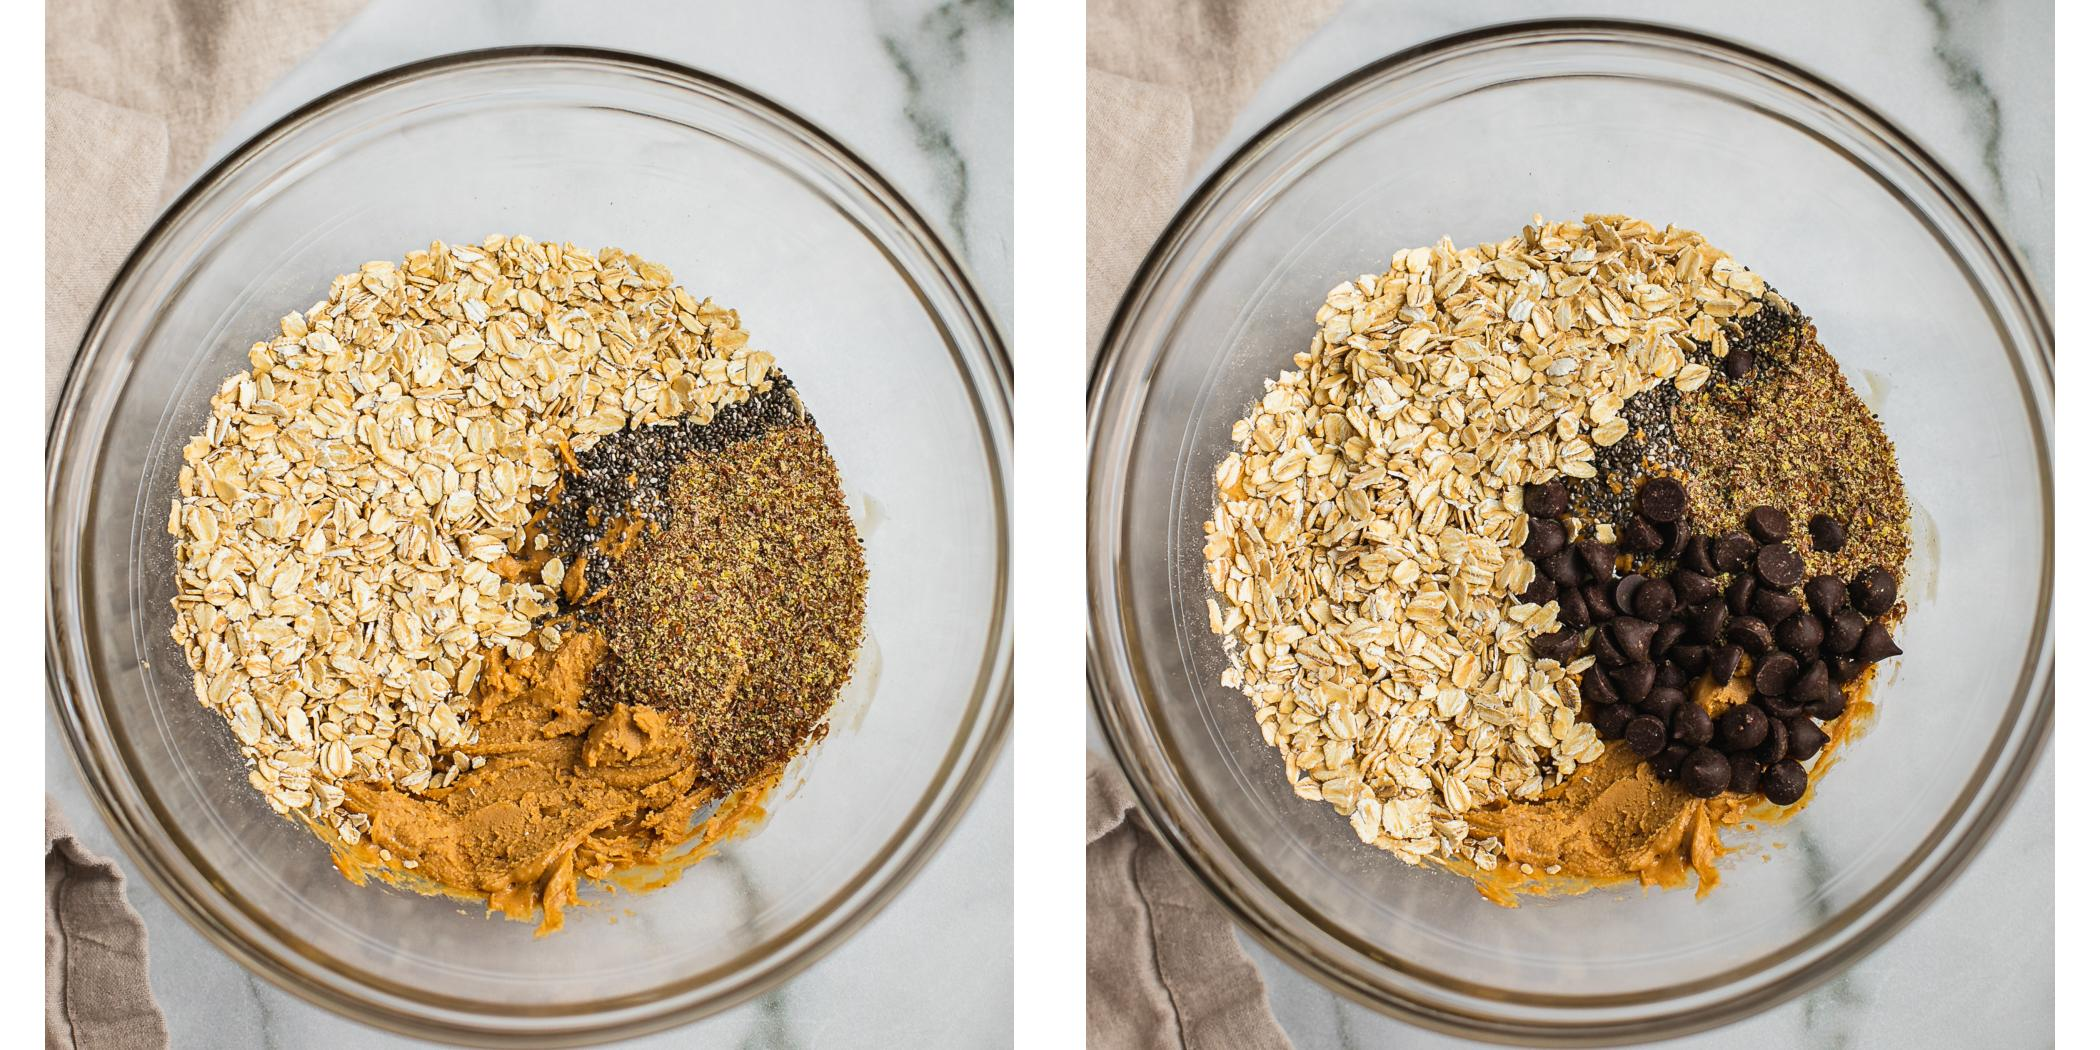 Instruction on how to make peanut butter oatmeal energy bite in a bowl without baking required.